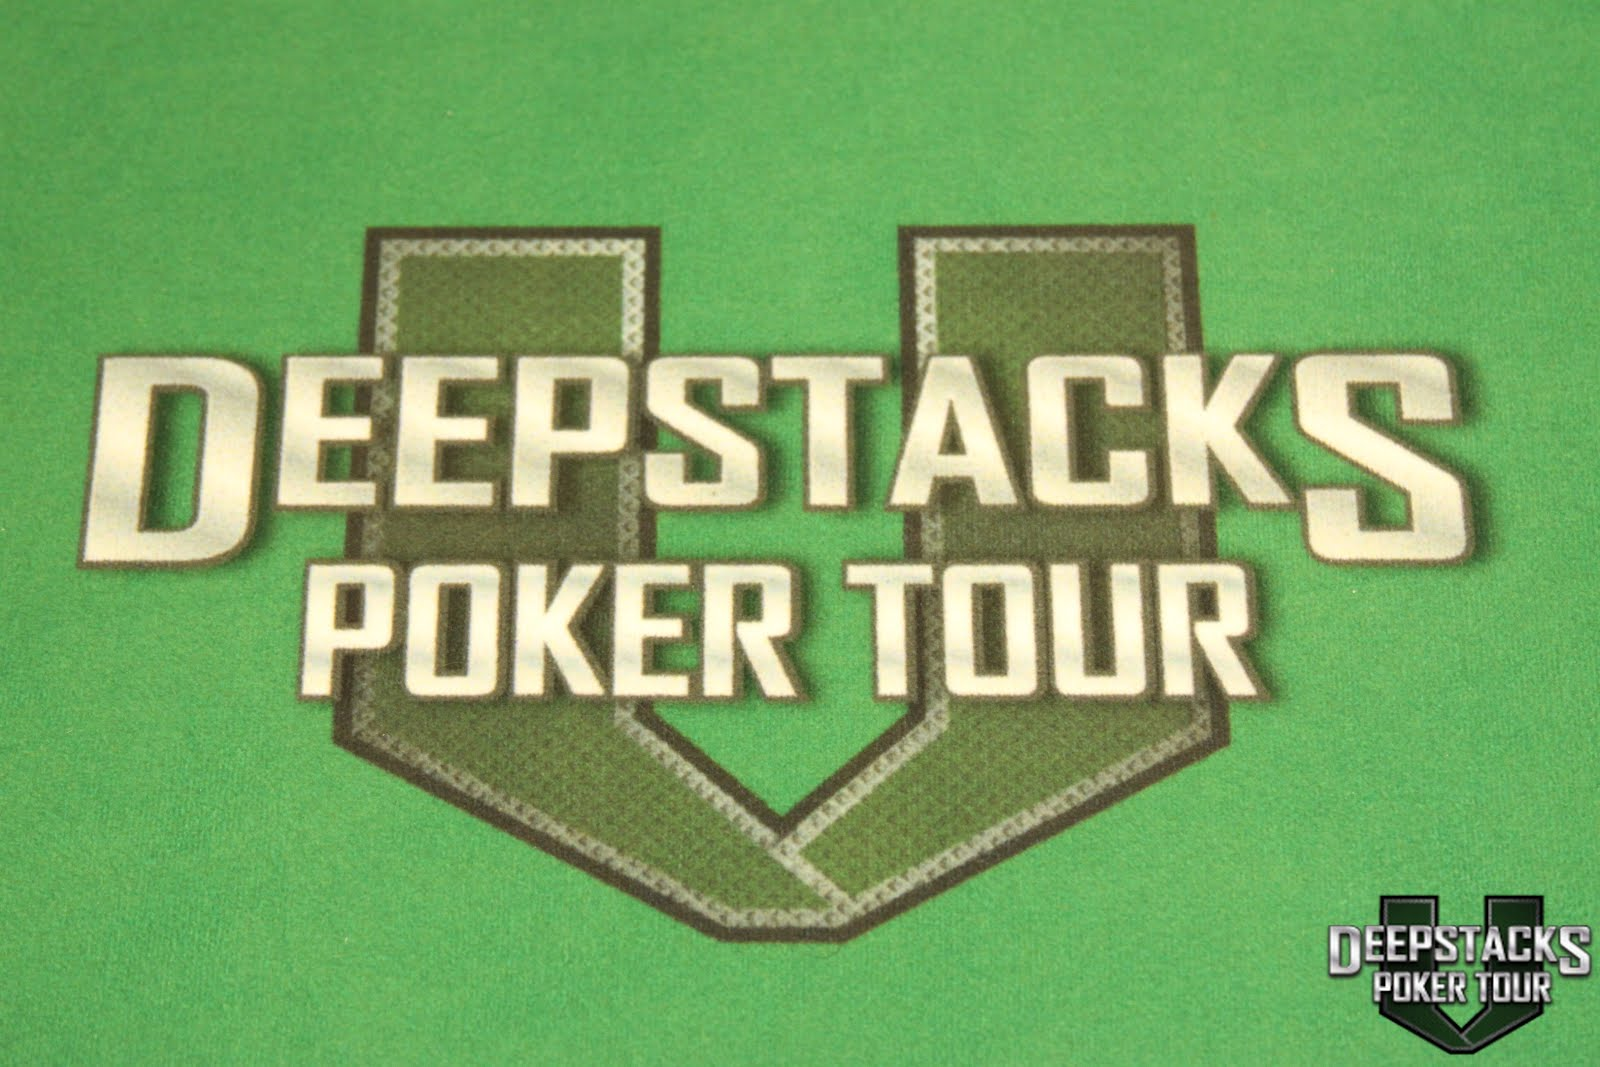 seneca chat rooms Has anybody played in the poker room at seneca salamanca in upper new york state i may be near there and want to know if it is worth going.